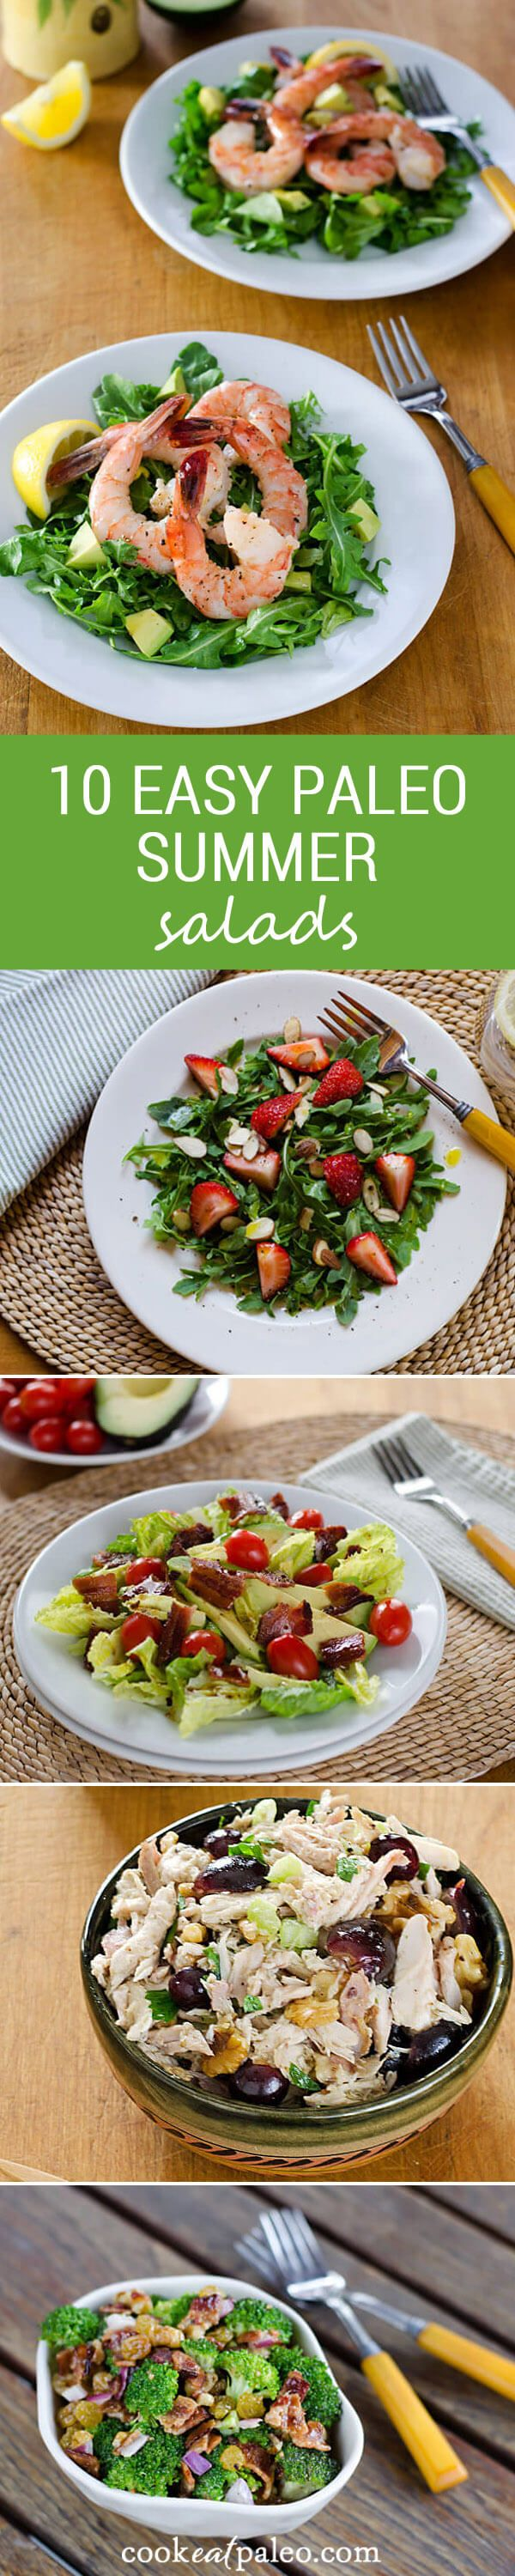 Here are 10 easy paleo summer salads — including my all-time favorite. And 3 easy paleo dressing recipes. All are gluten-free, grain-free and dairy-free. ~ http://cookeatpaleo.com